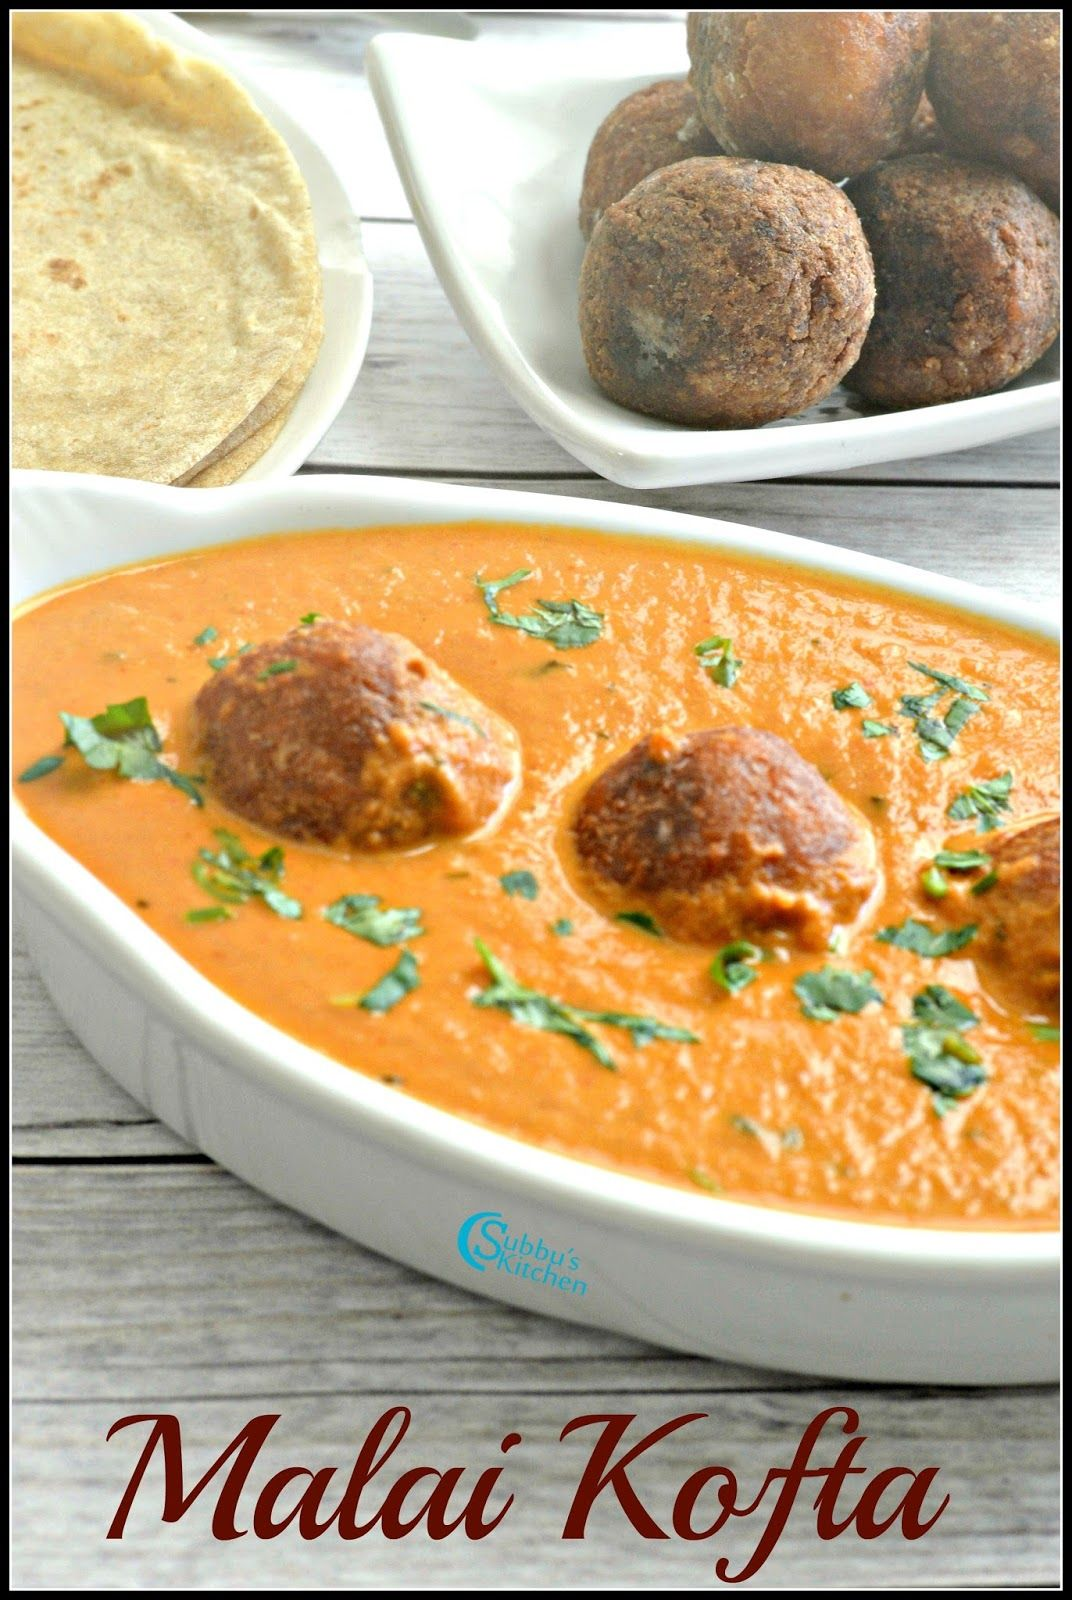 Malai kofta recipe get in my belly pinterest recipes malai kofta recipe indian food forumfinder Choice Image